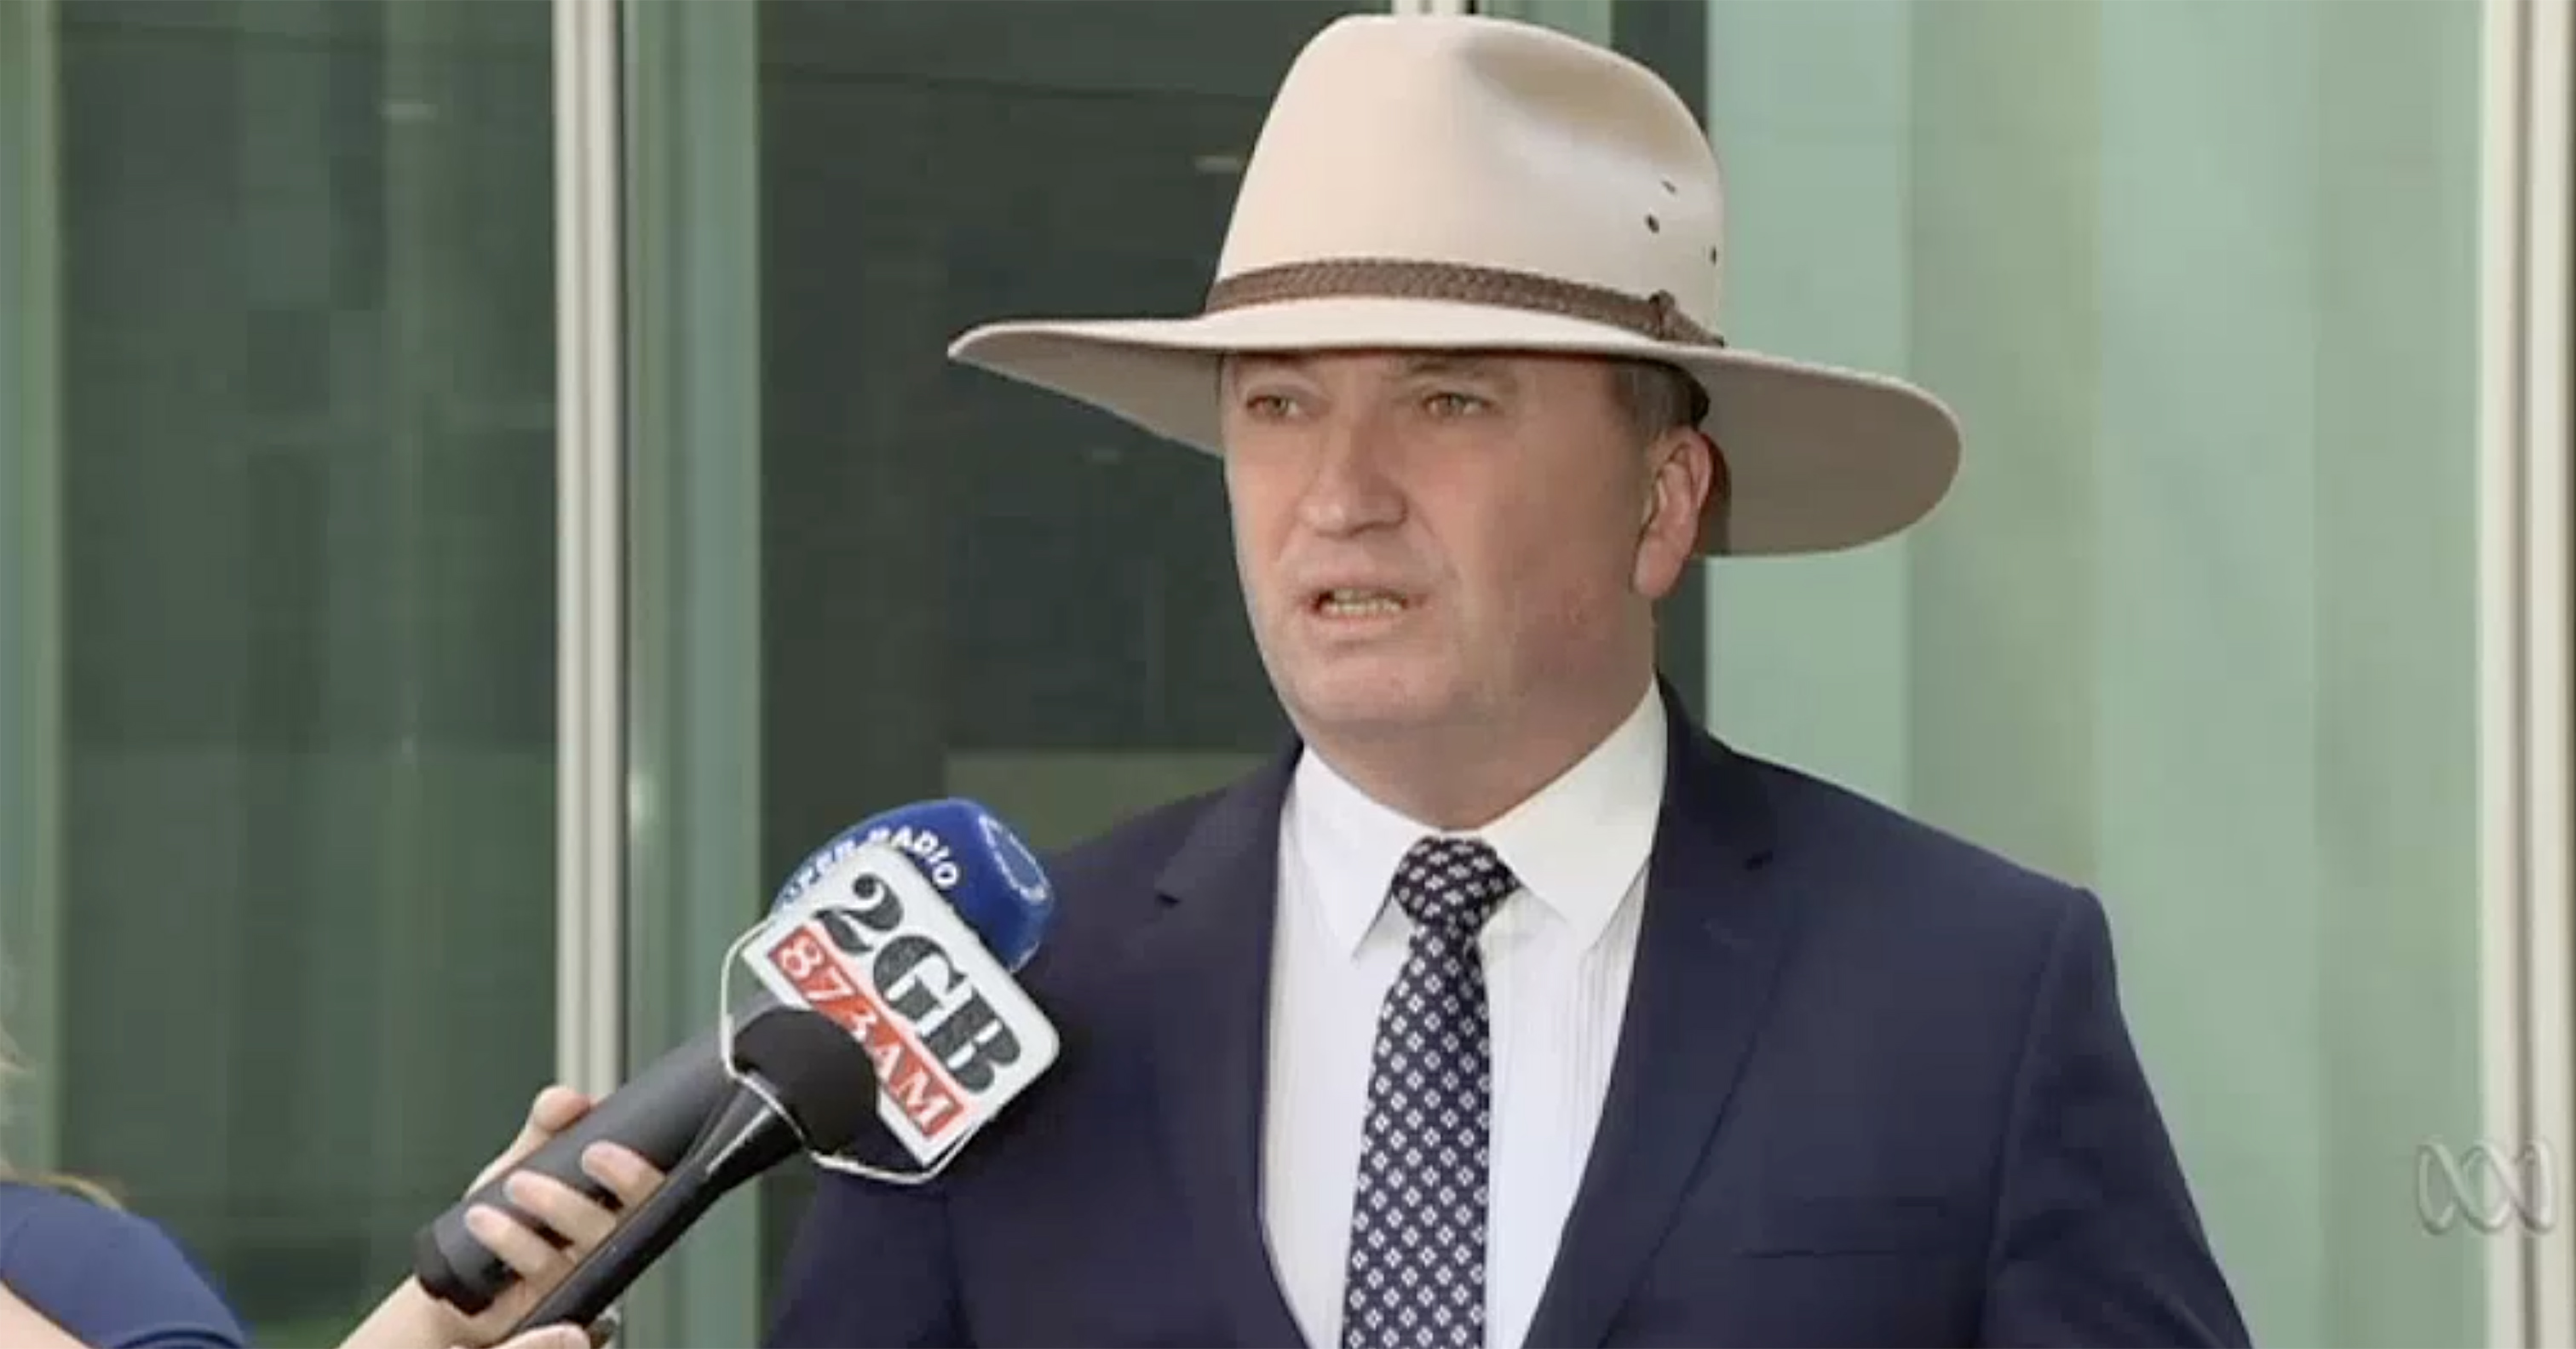 Barnaby Joyce rebukes the PM for criticising his behaviour in office. Screengrab ex ABC news broadcast. 16th Feb 2018